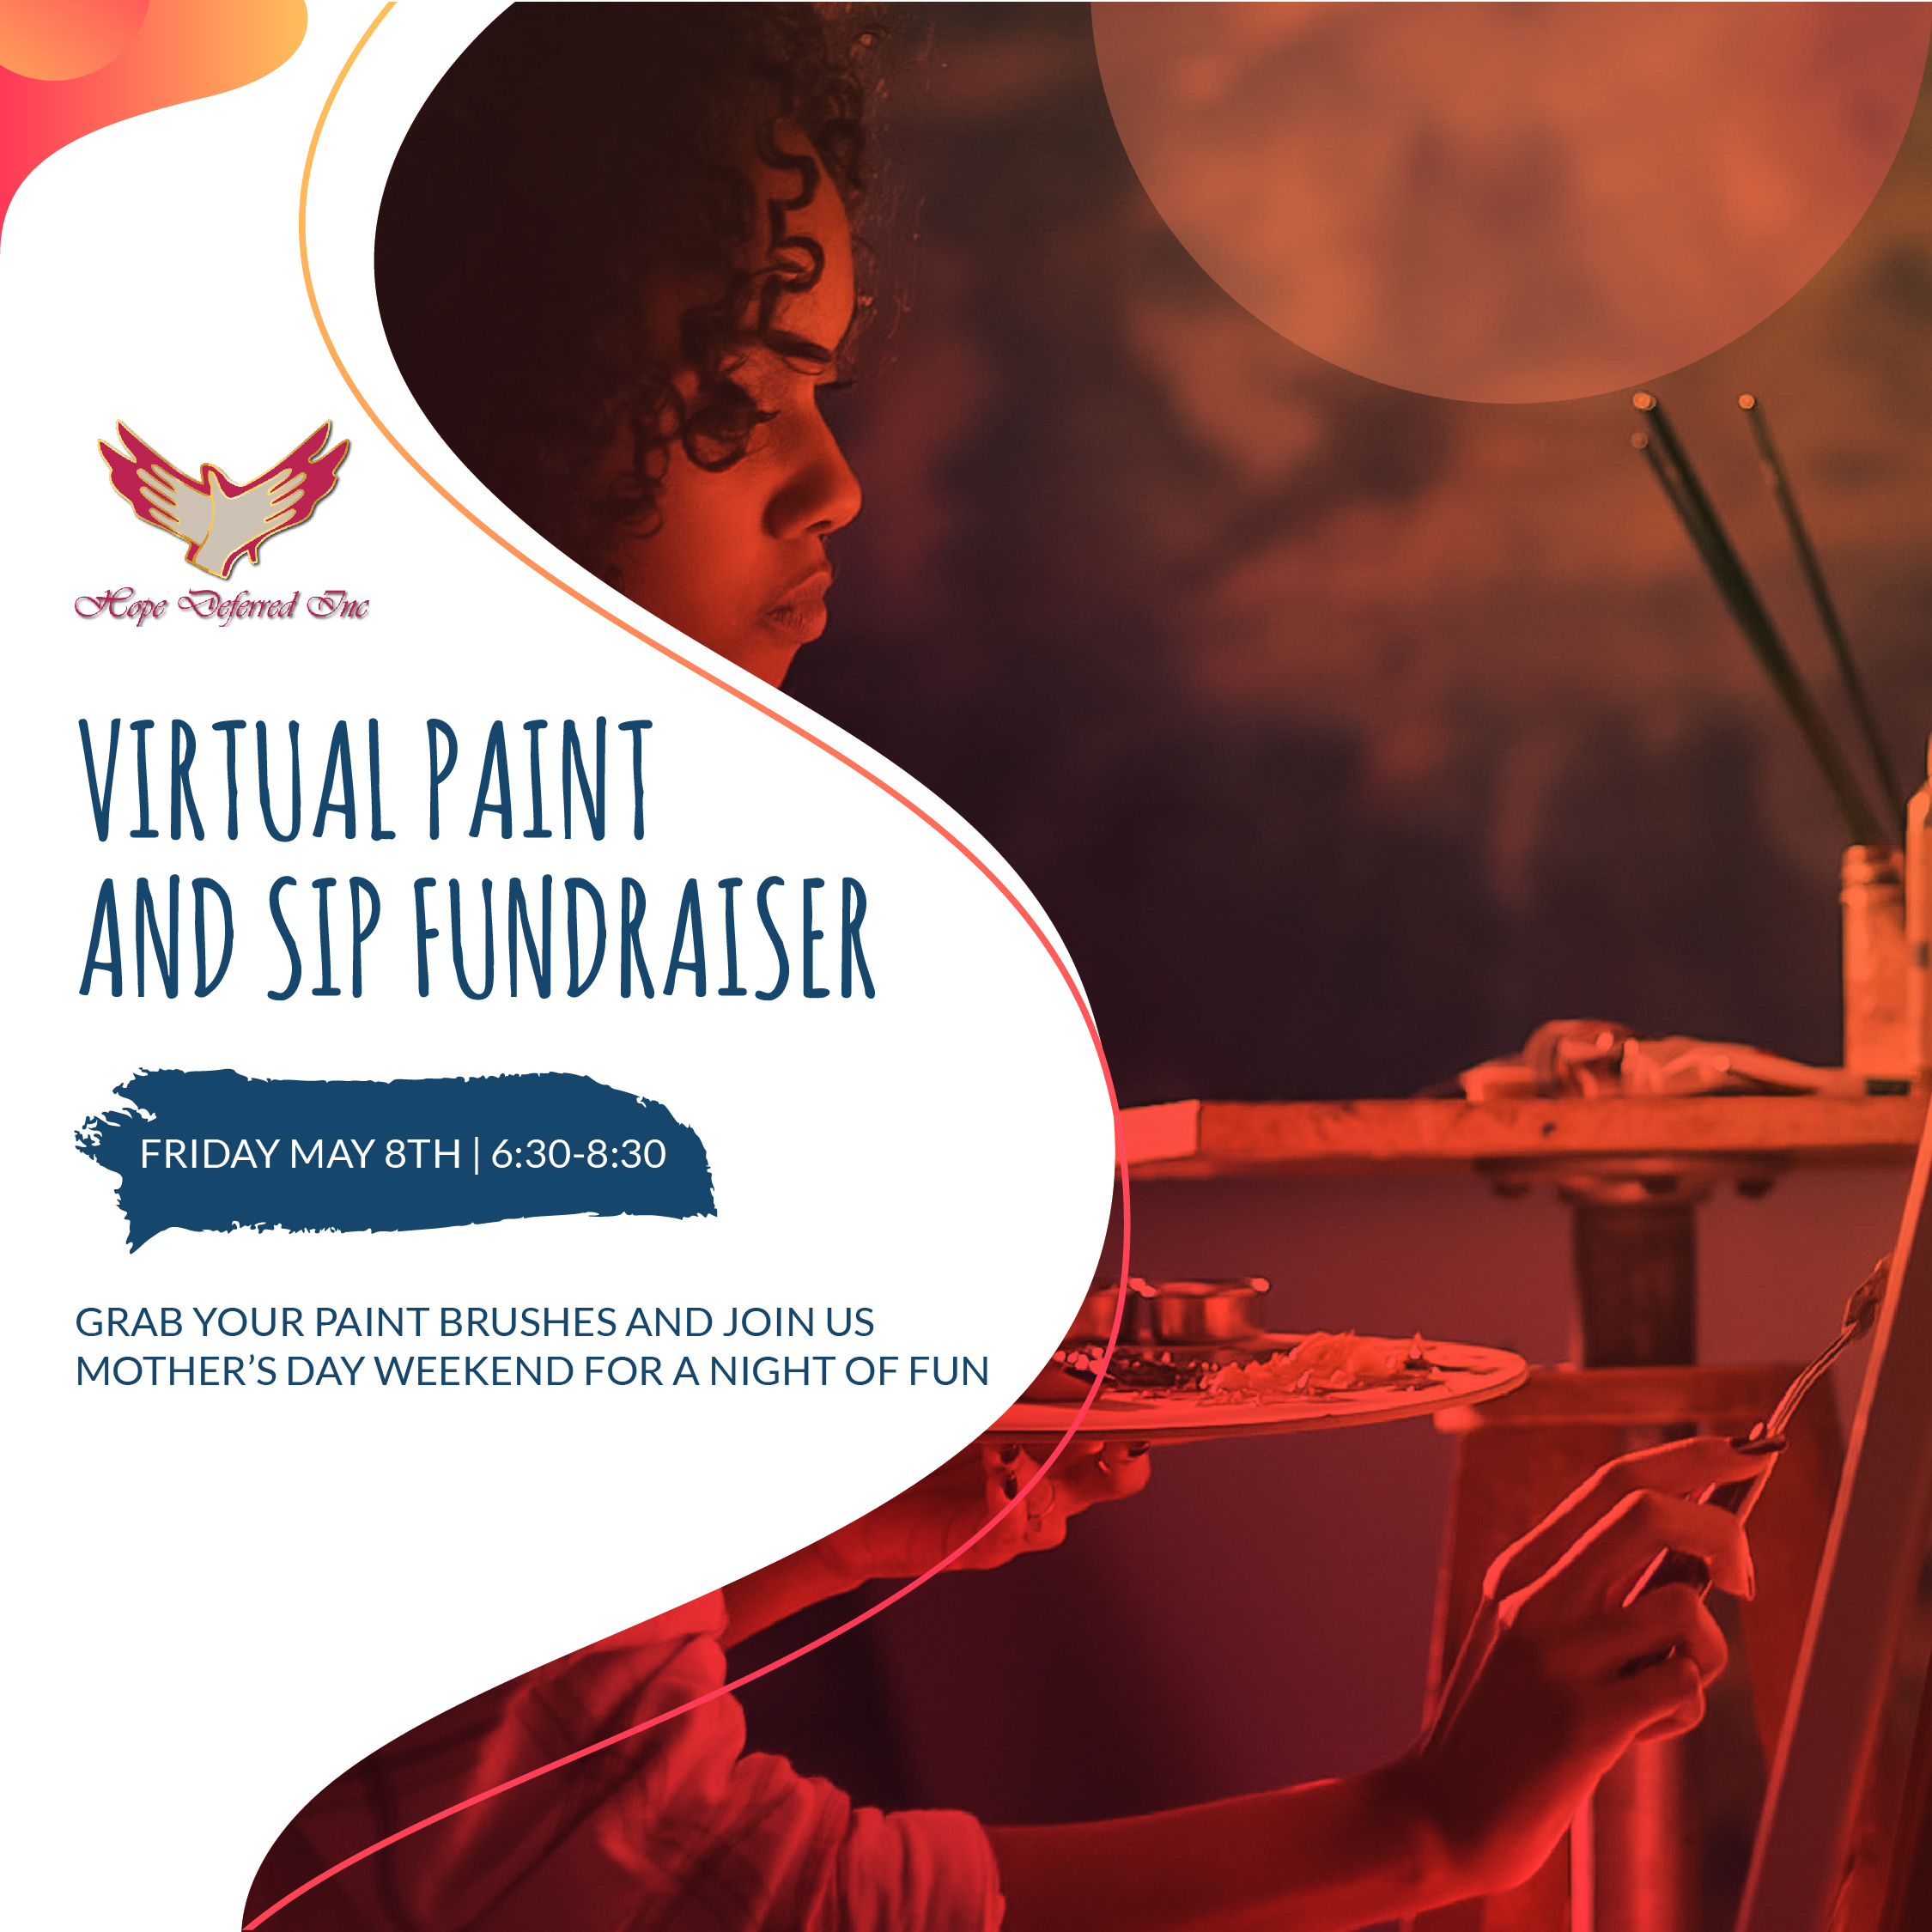 Virtual Paint and Sip Fundraiser